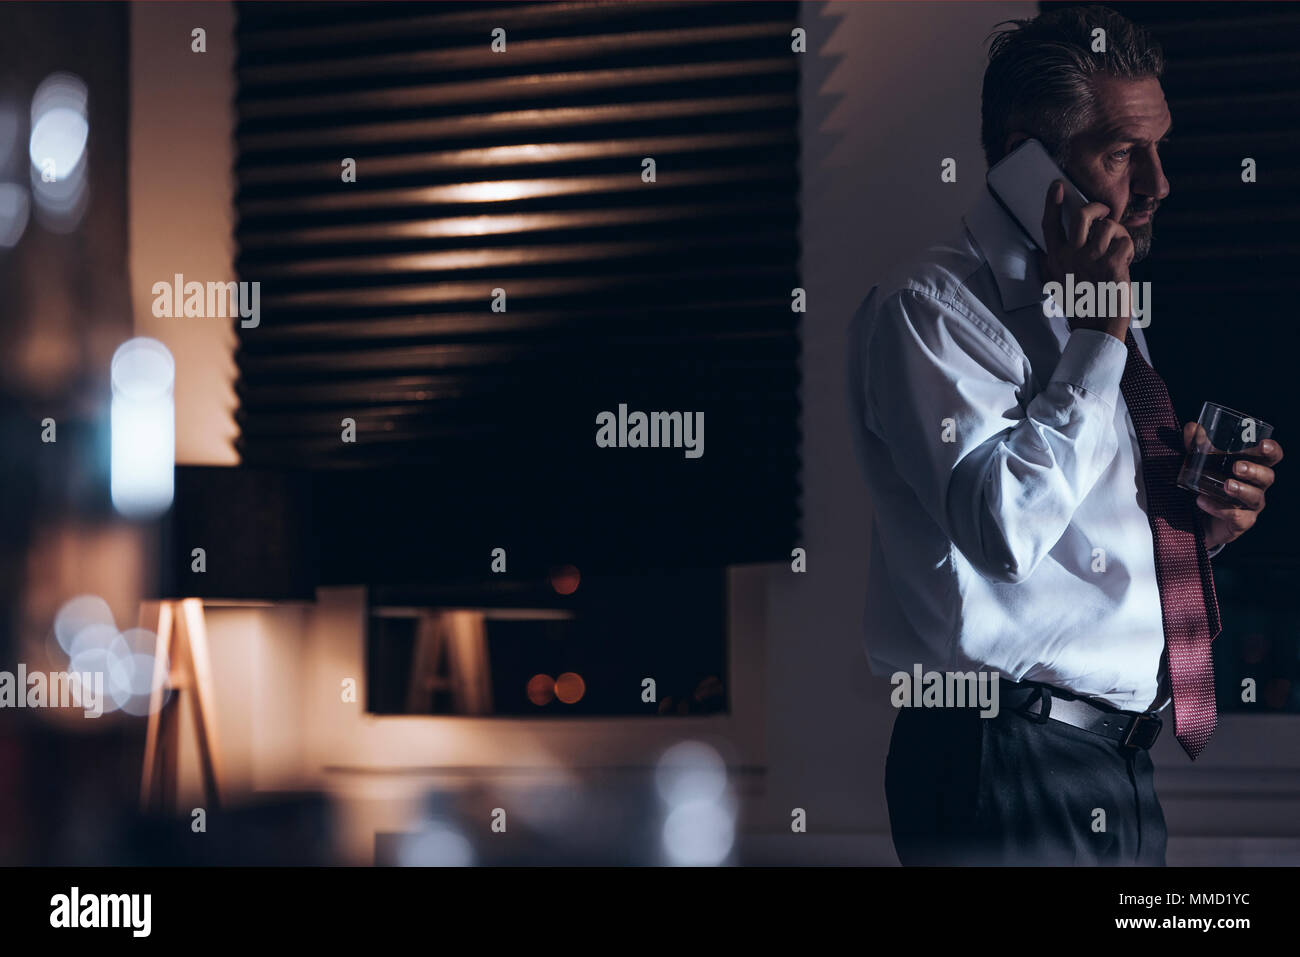 Tired and sad middle-aged businessman talking on the phone and holding a glass with alcohol while standing in a room with dimmed light and window blin - Stock Image